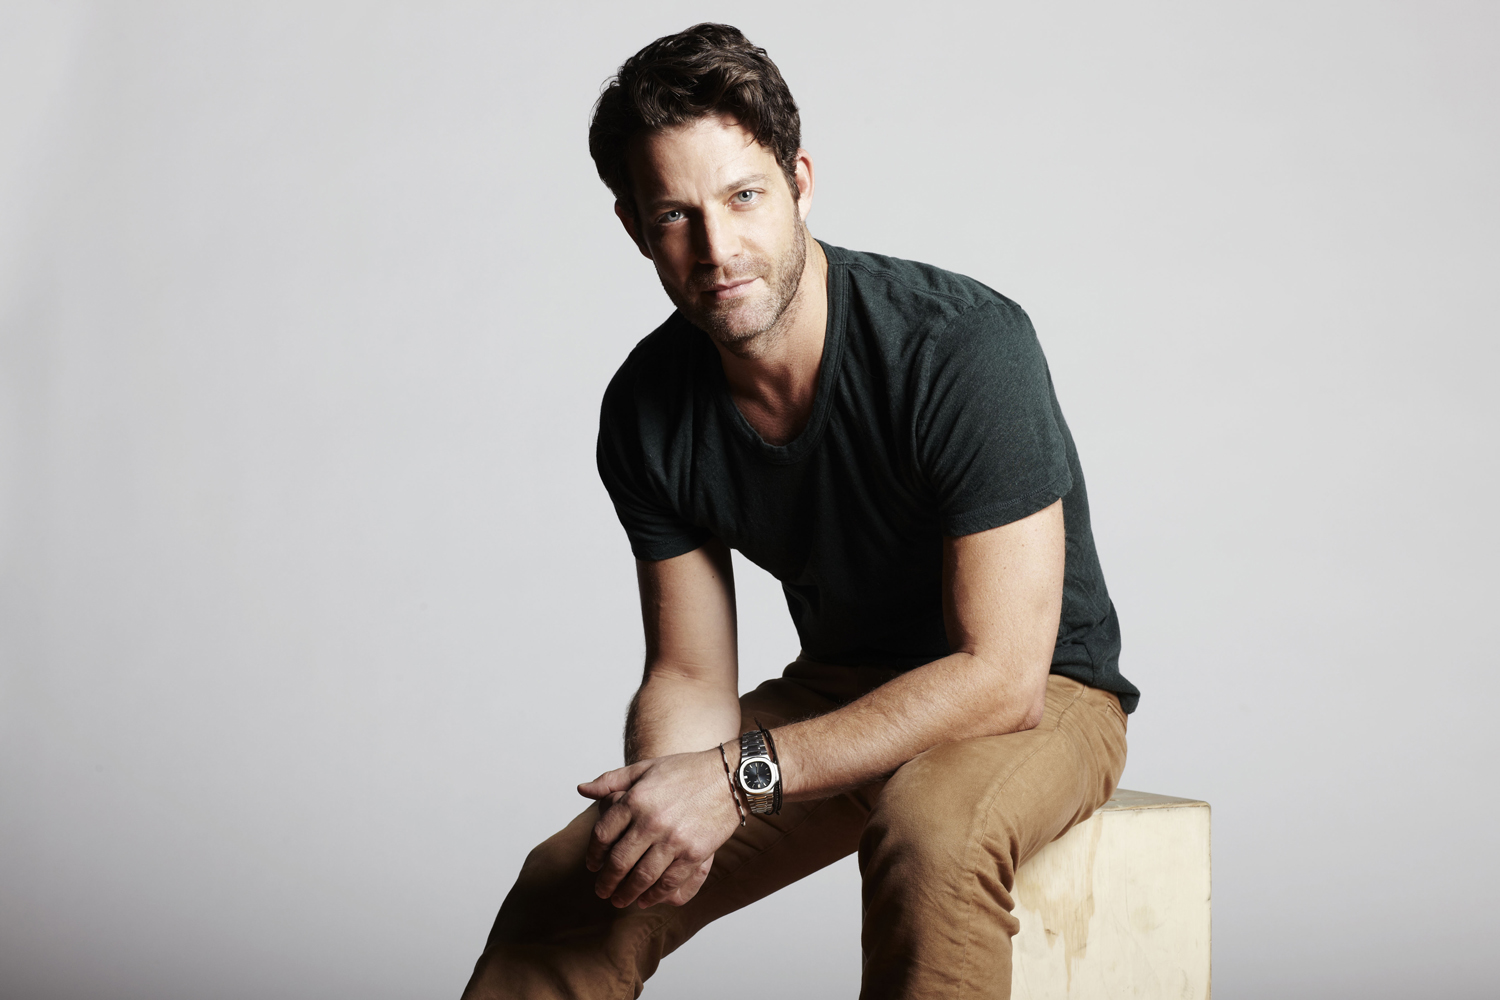 inteiror designer nate berkus launches new home makeover show